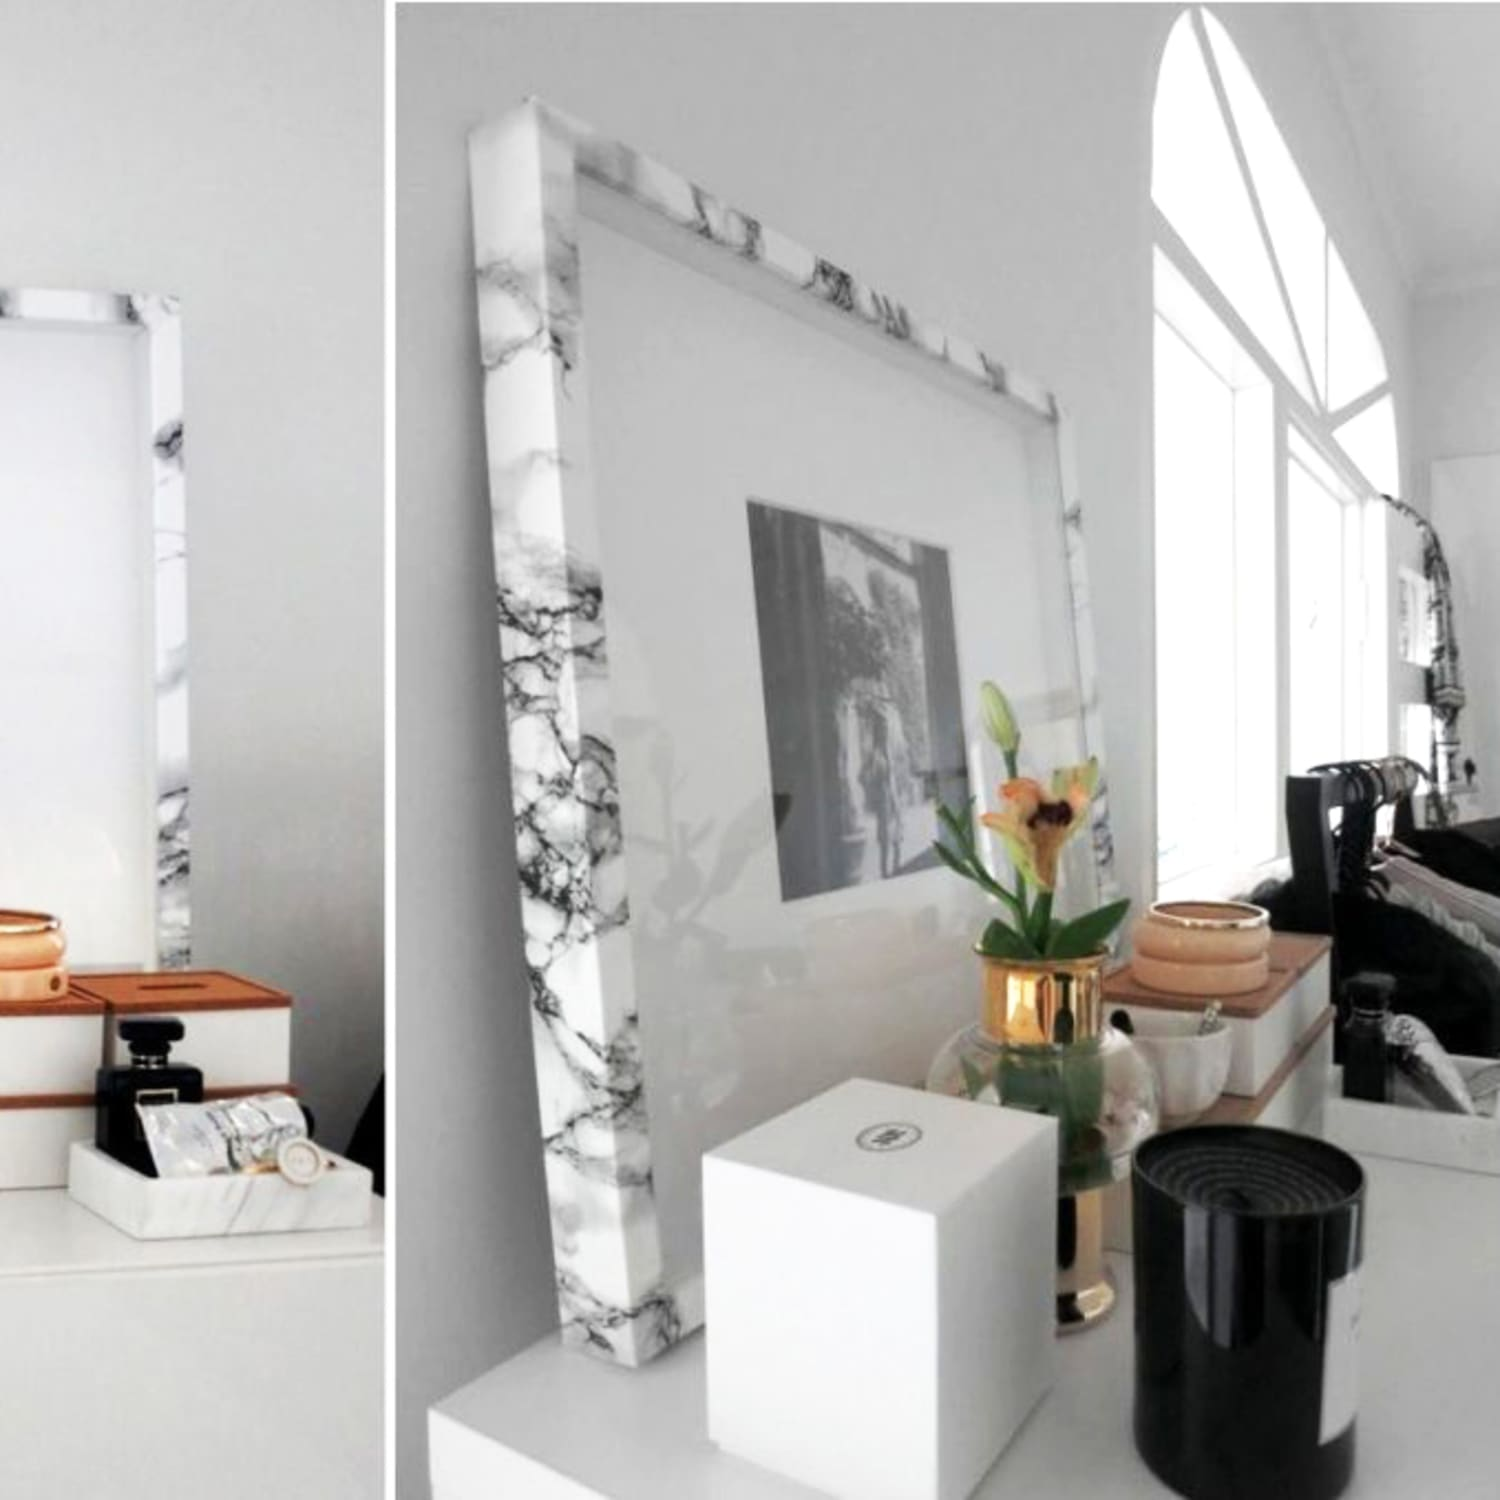 11 Clever Contact Paper Uses How To Re Do Furniture More With Contact Paper Apartment Therapy